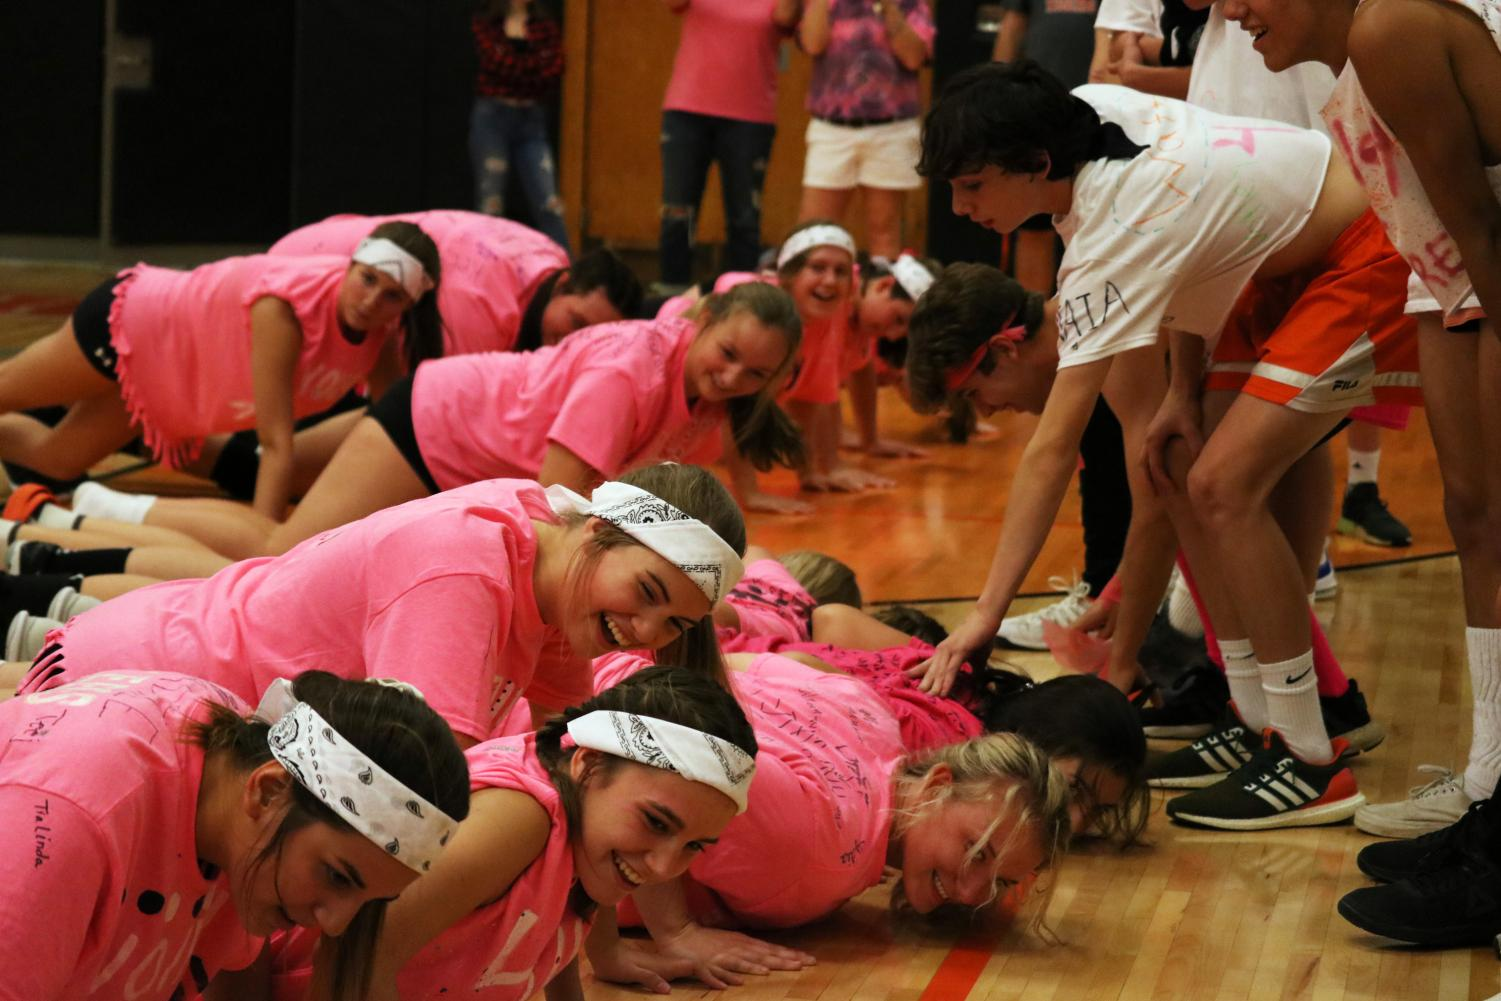 With support from the boys soccer teams, the girls volleyball teams do push ups. The two teams versed each other in a friendly game of volleyball on Oct. 10 to raise money for a Fenton student with cancer.